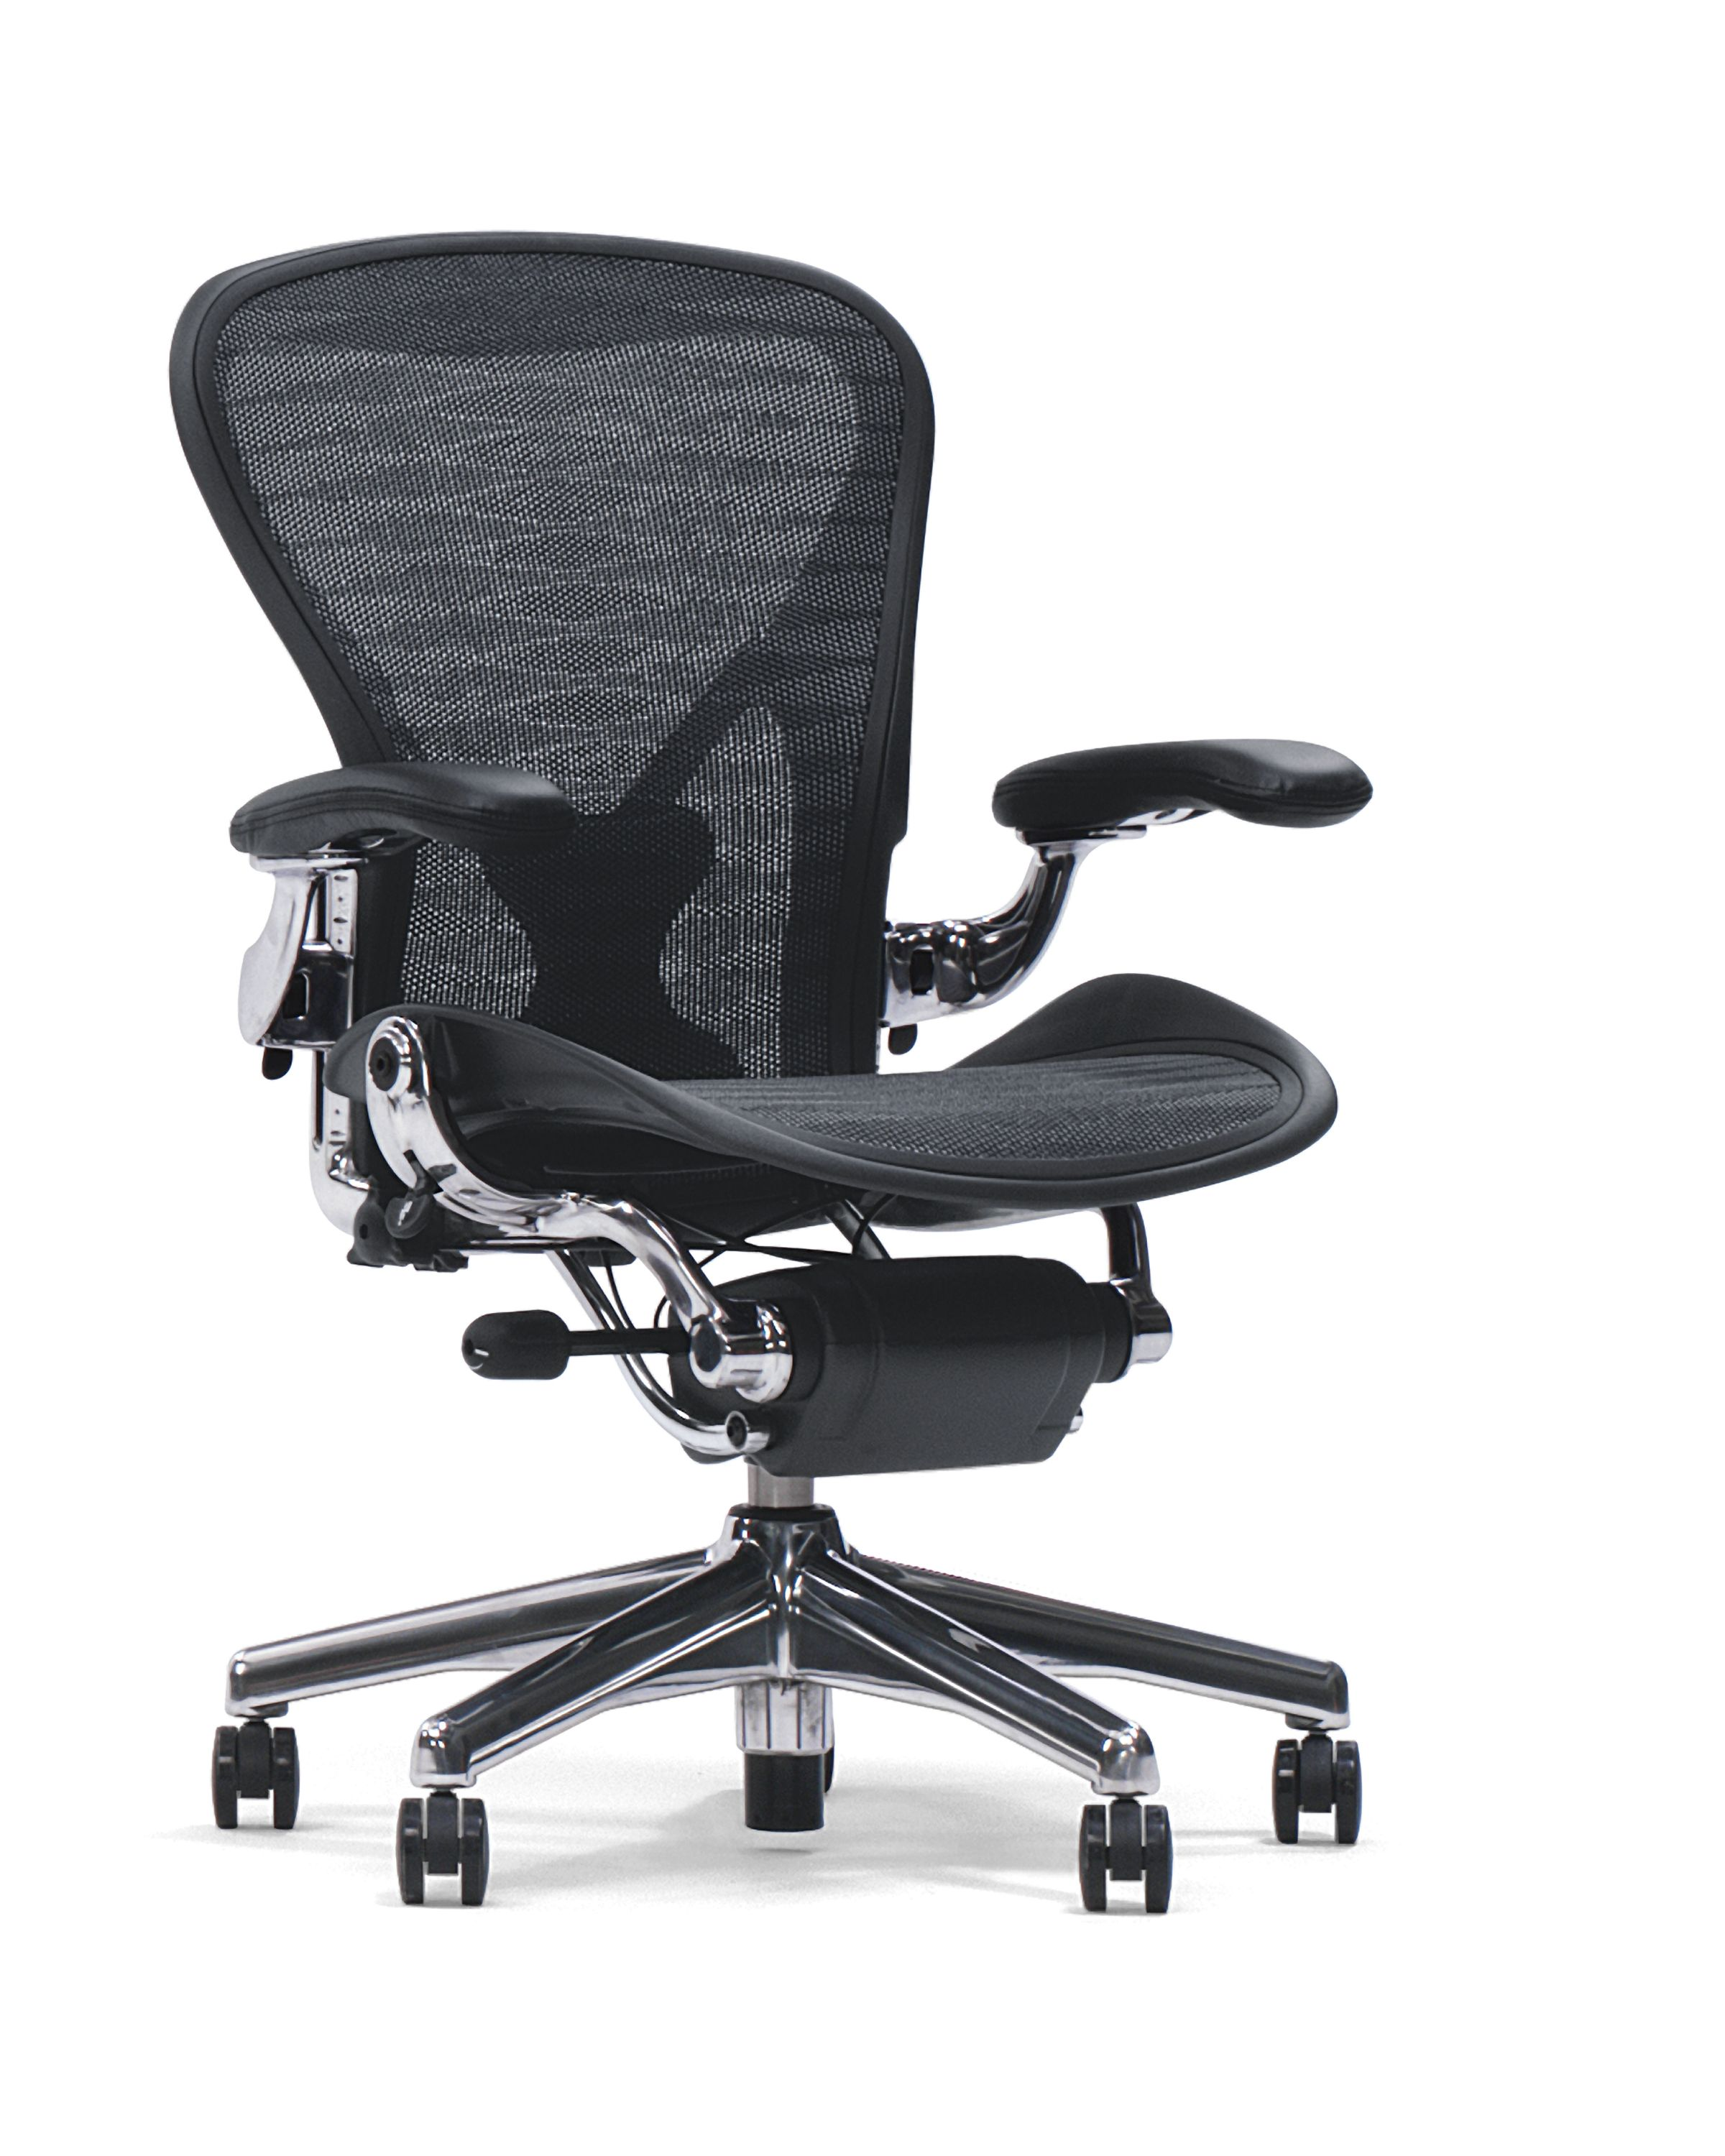 Aeron Chairs Remastered Best Office Chair Aeron Office Chair Ergonomic Office Chair